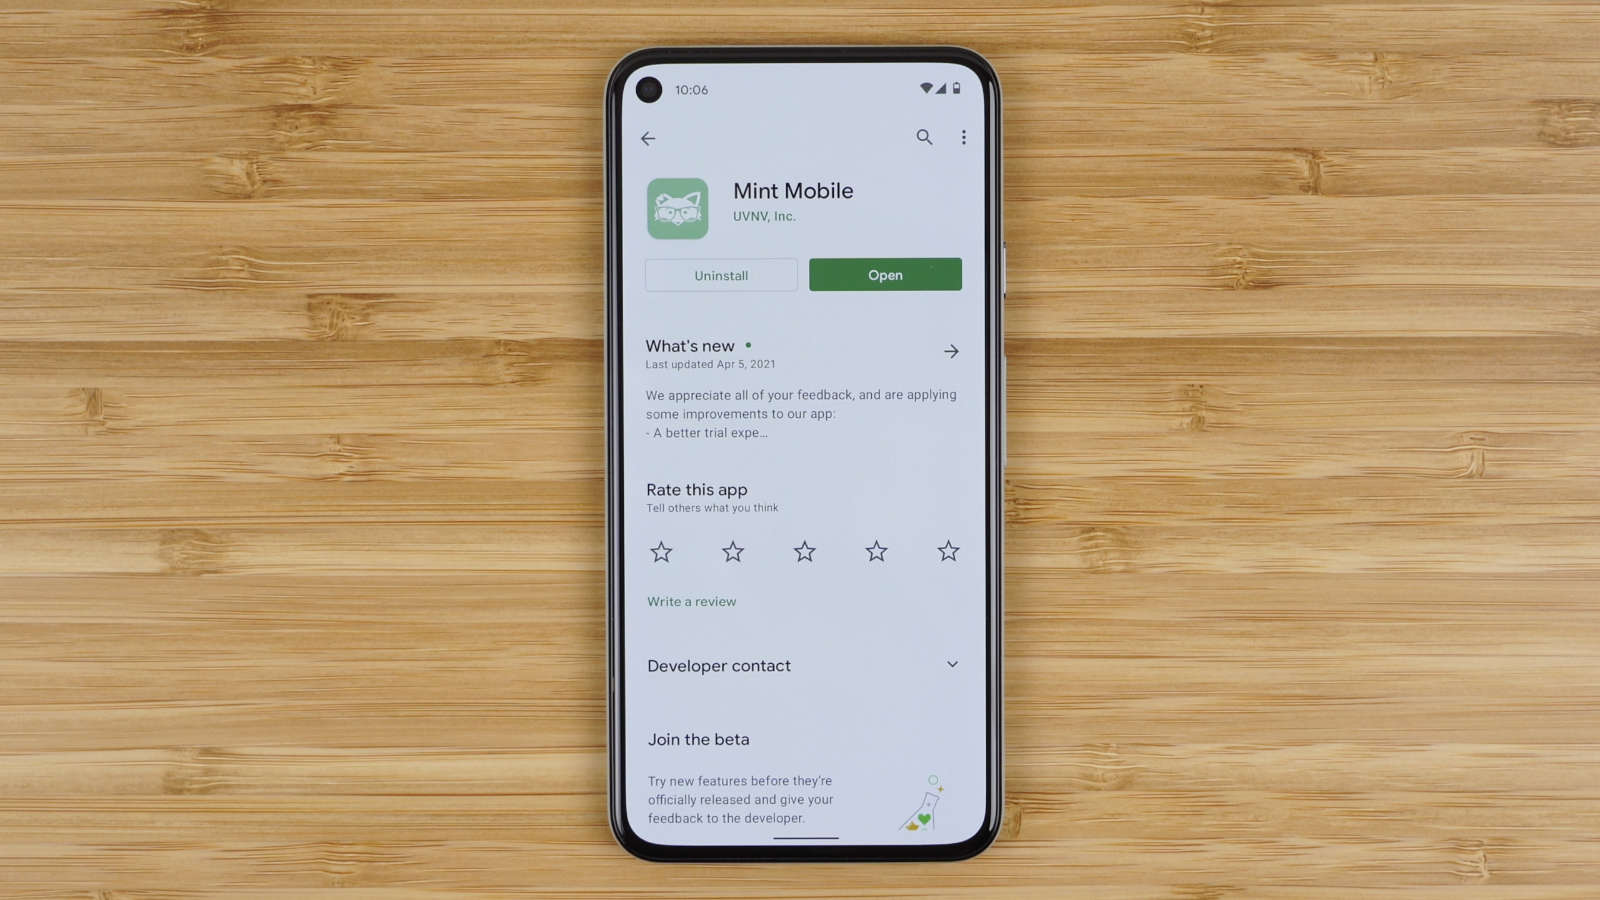 Mint Mobile app on Google Play Store